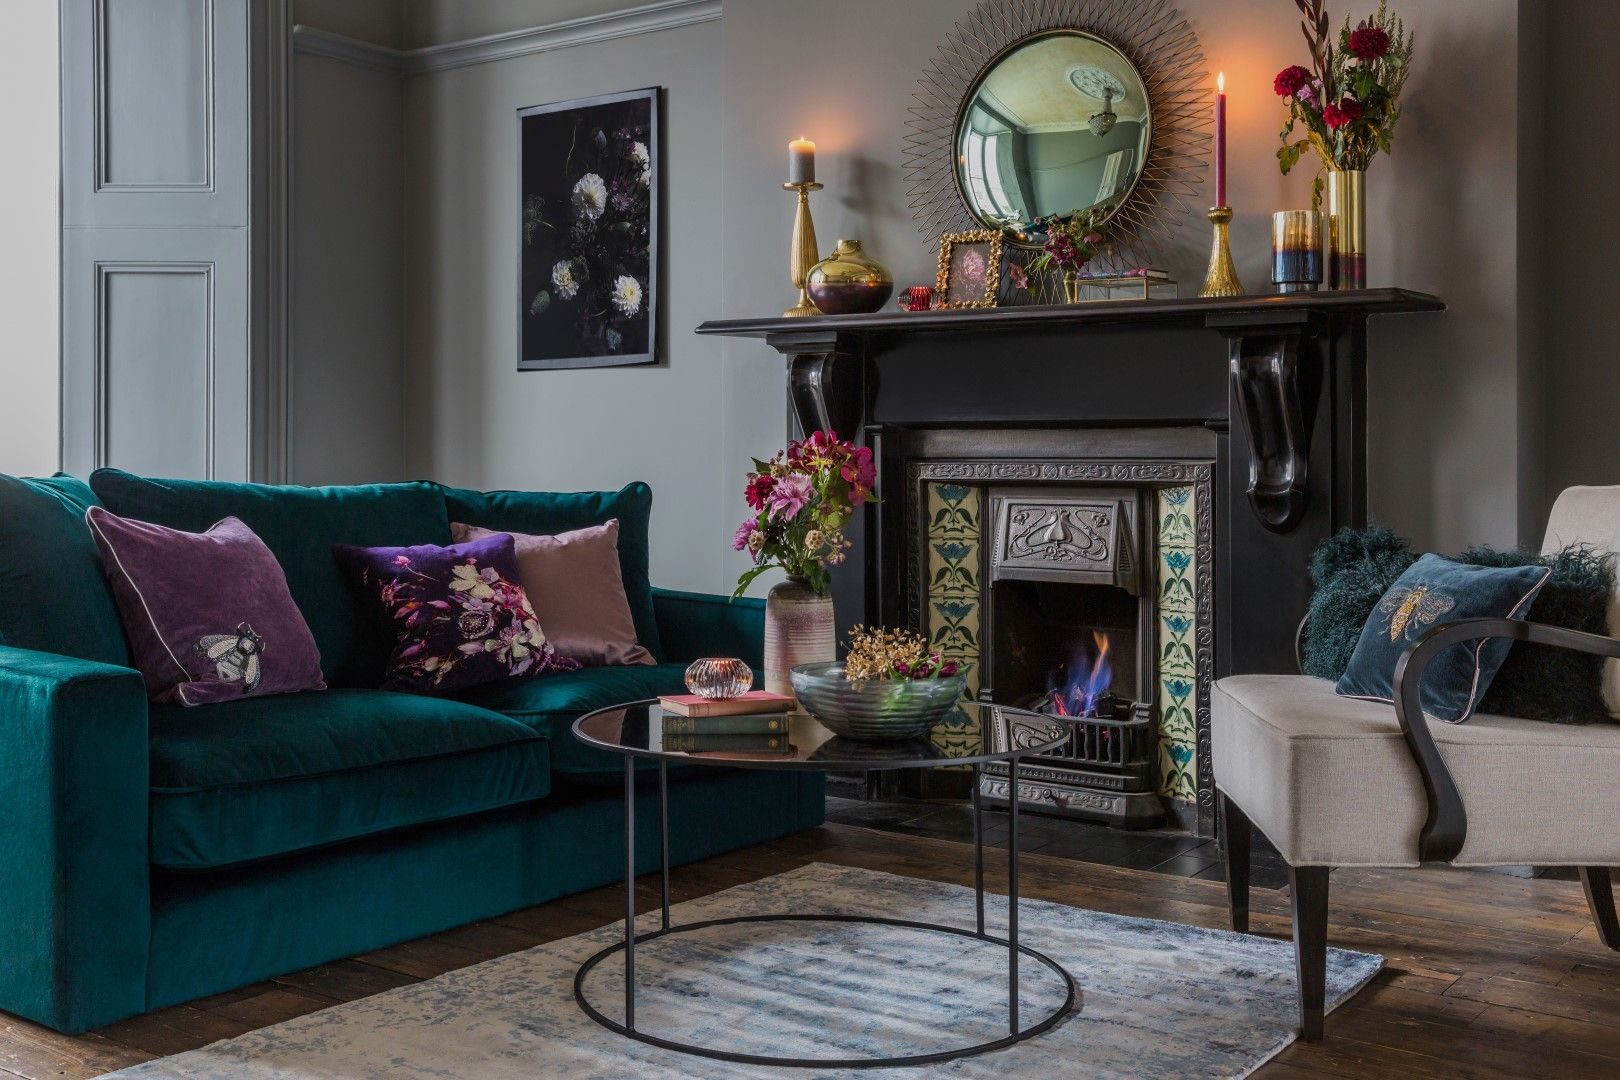 16 Ideas to Keep Your Victorian Home Decor Looking Fresh